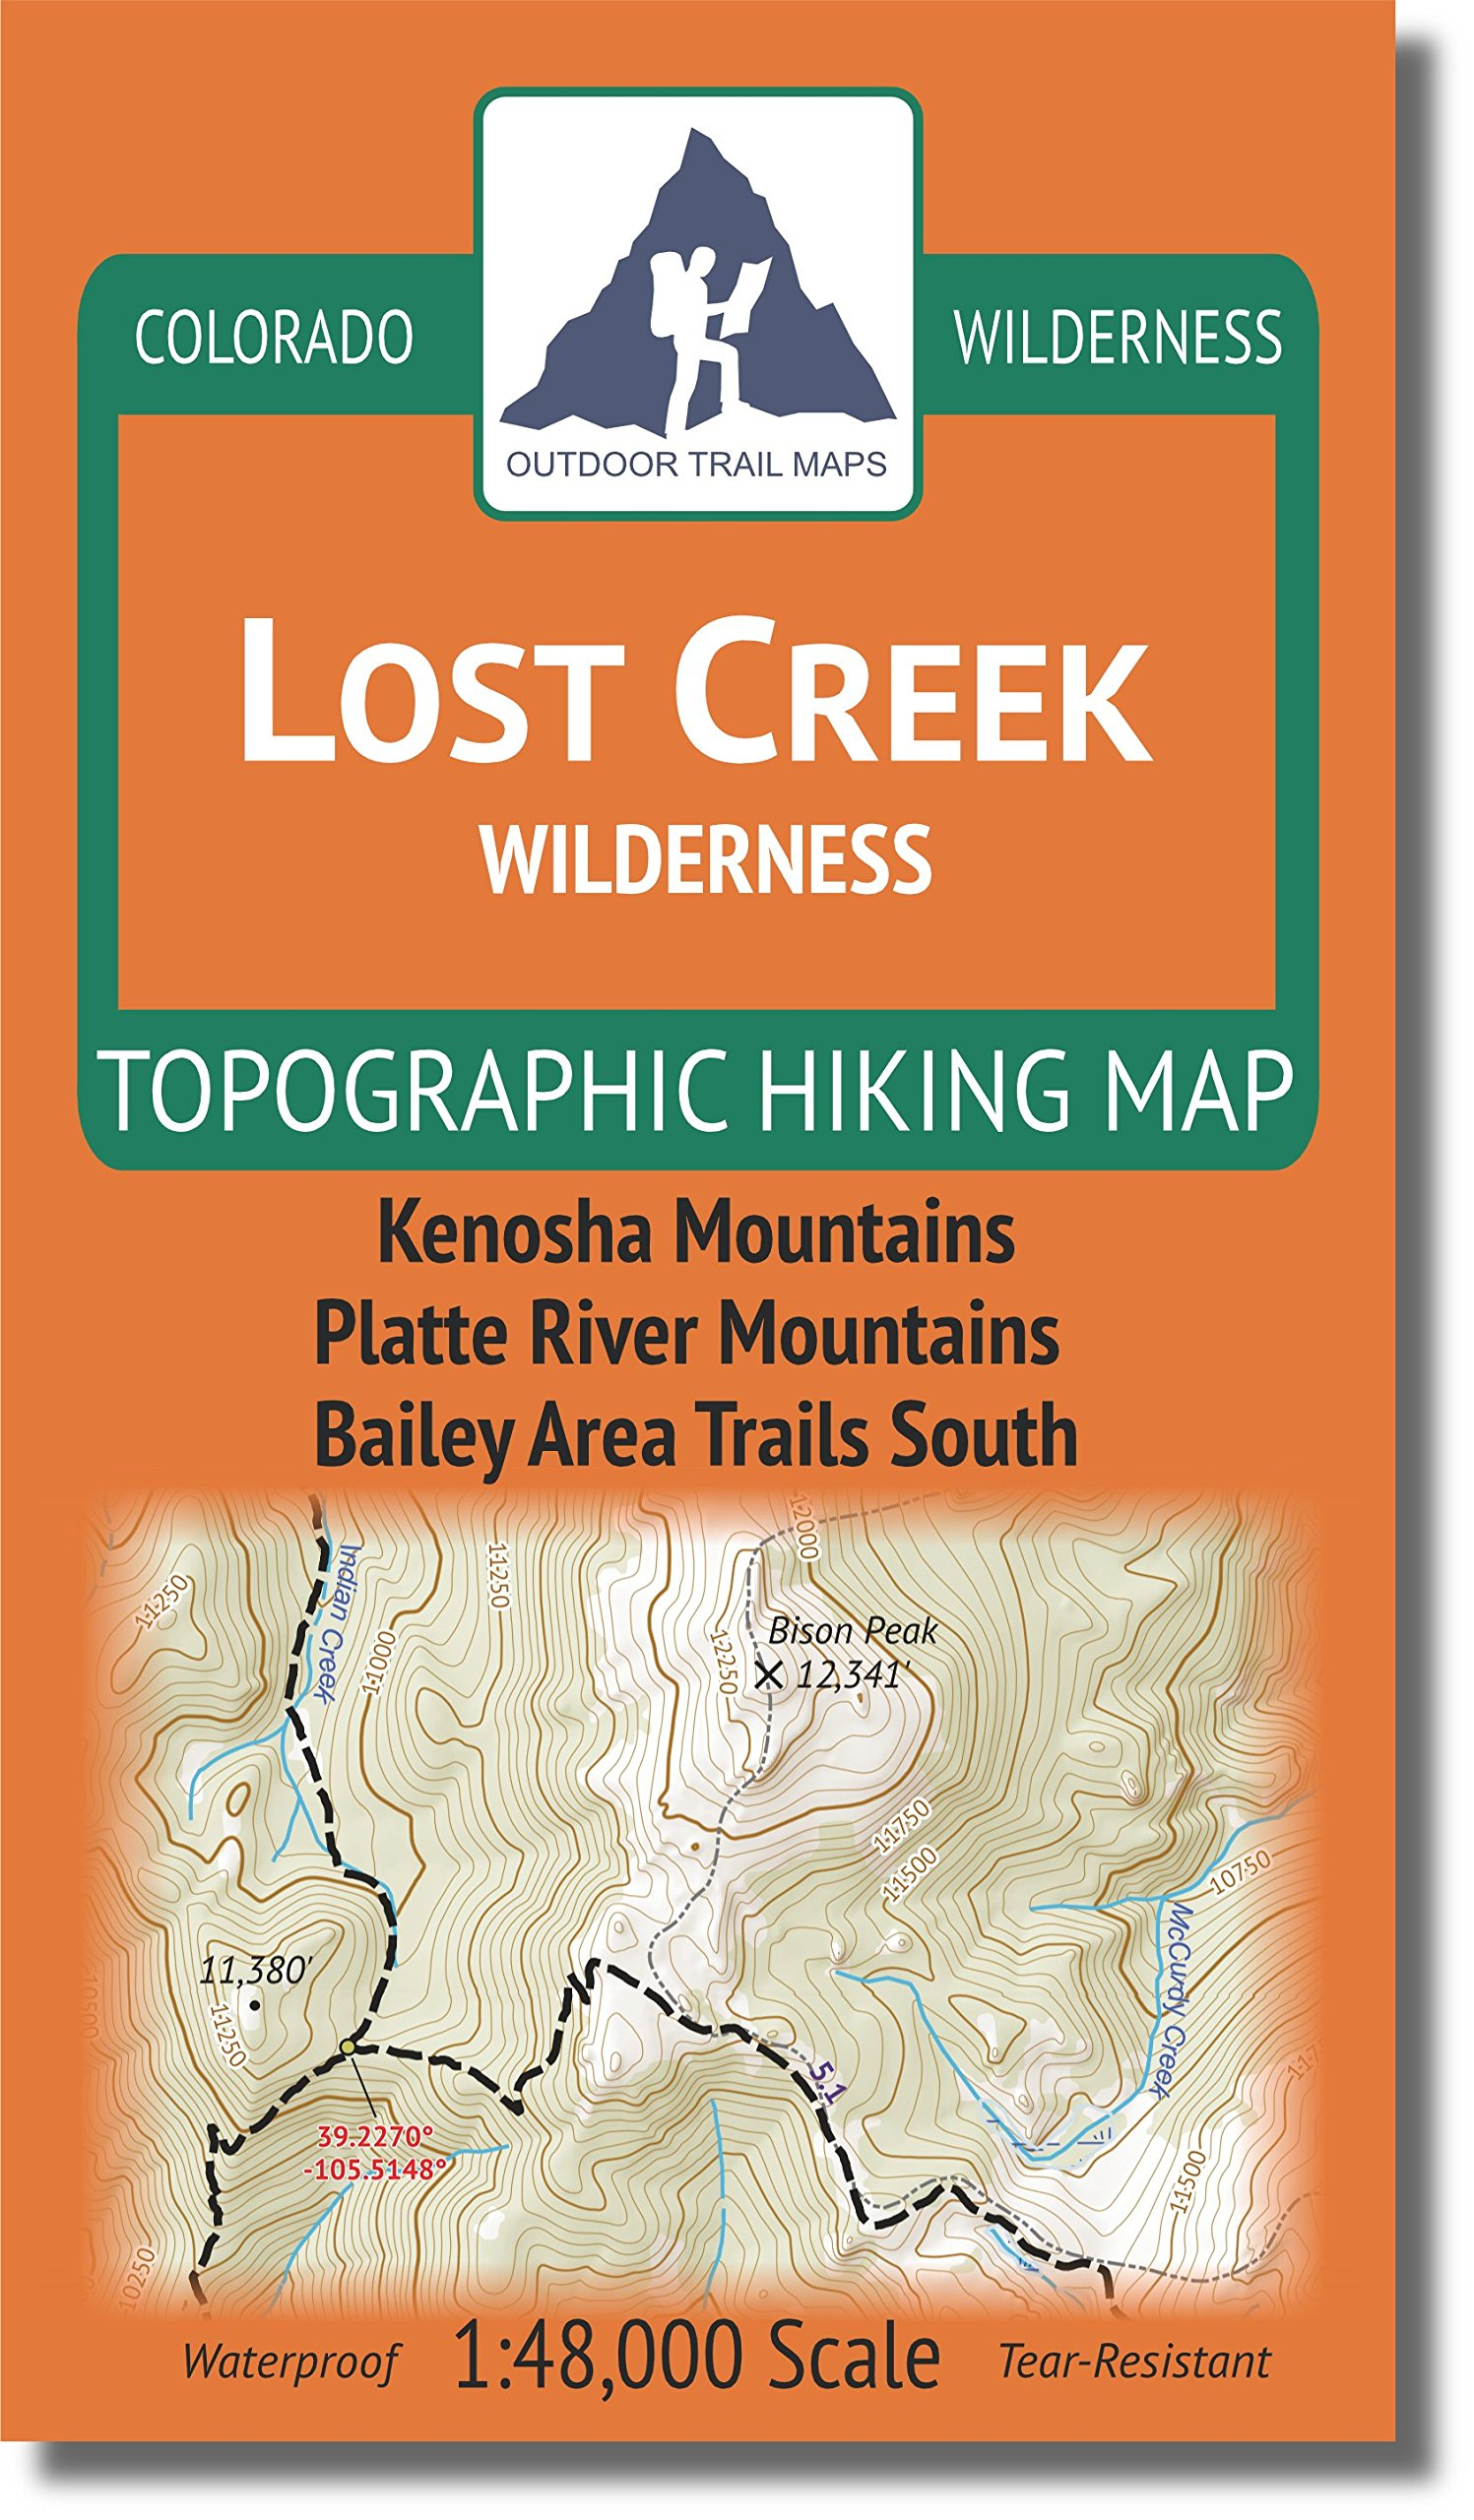 Lost Creek Wilderness - Colorado Topographic Hiking Map (2018)